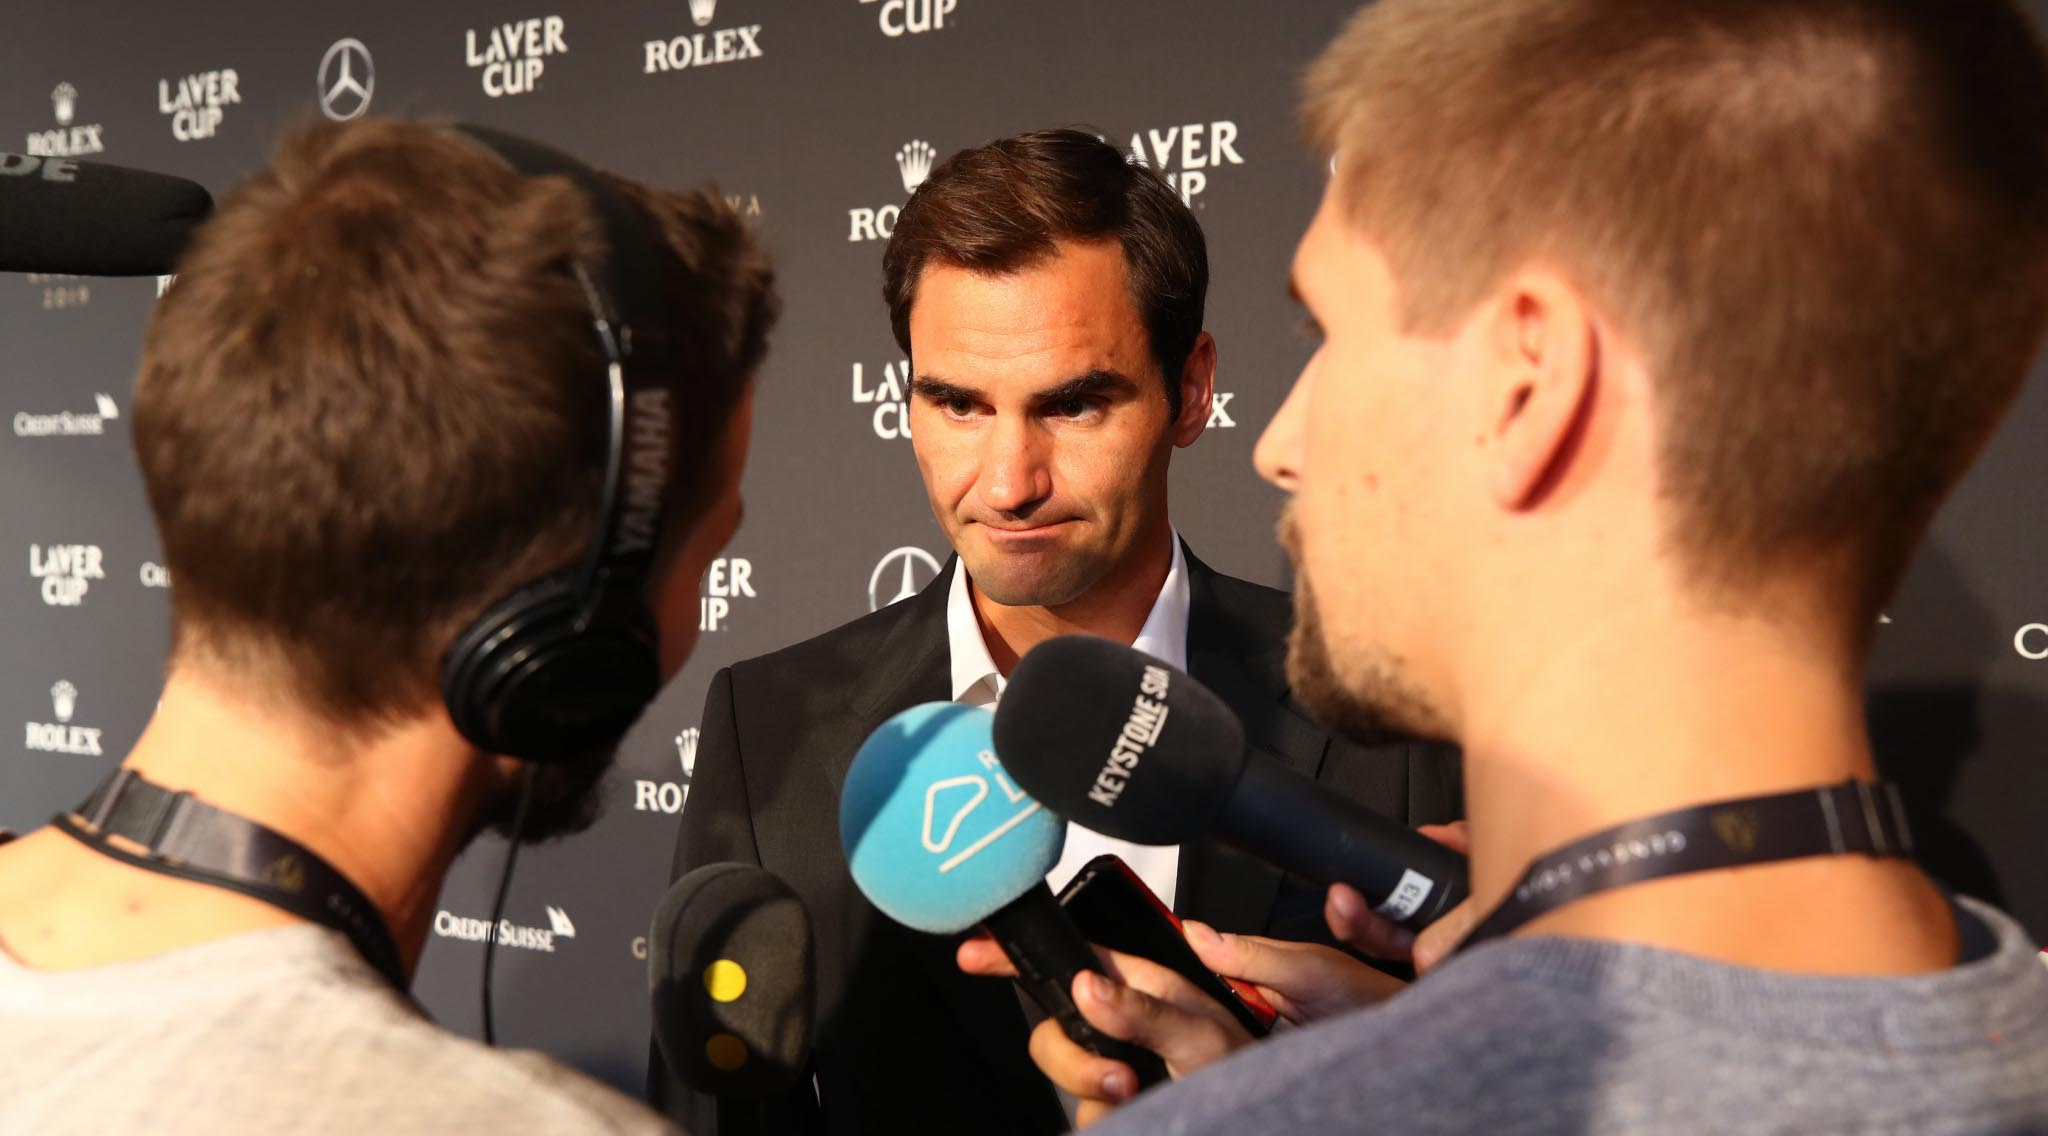 TO BE OR NOT TO BE? ROGER FEDERER KEEPS TOKYO 2020 OLYMPIC ORGANISERS GUESSING